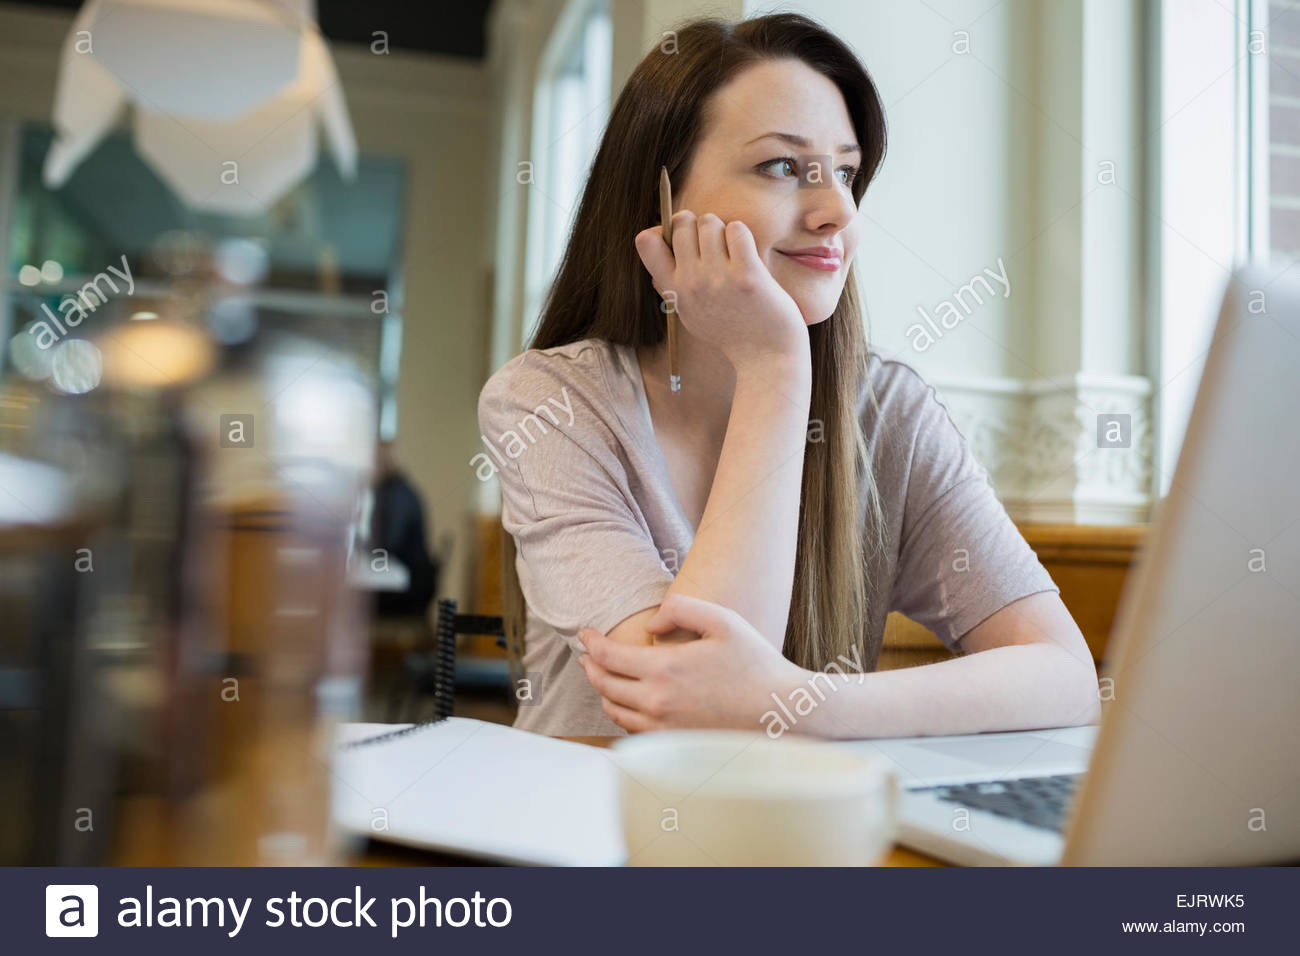 Smiling woman looking away at laptop in cafe Stock Photo